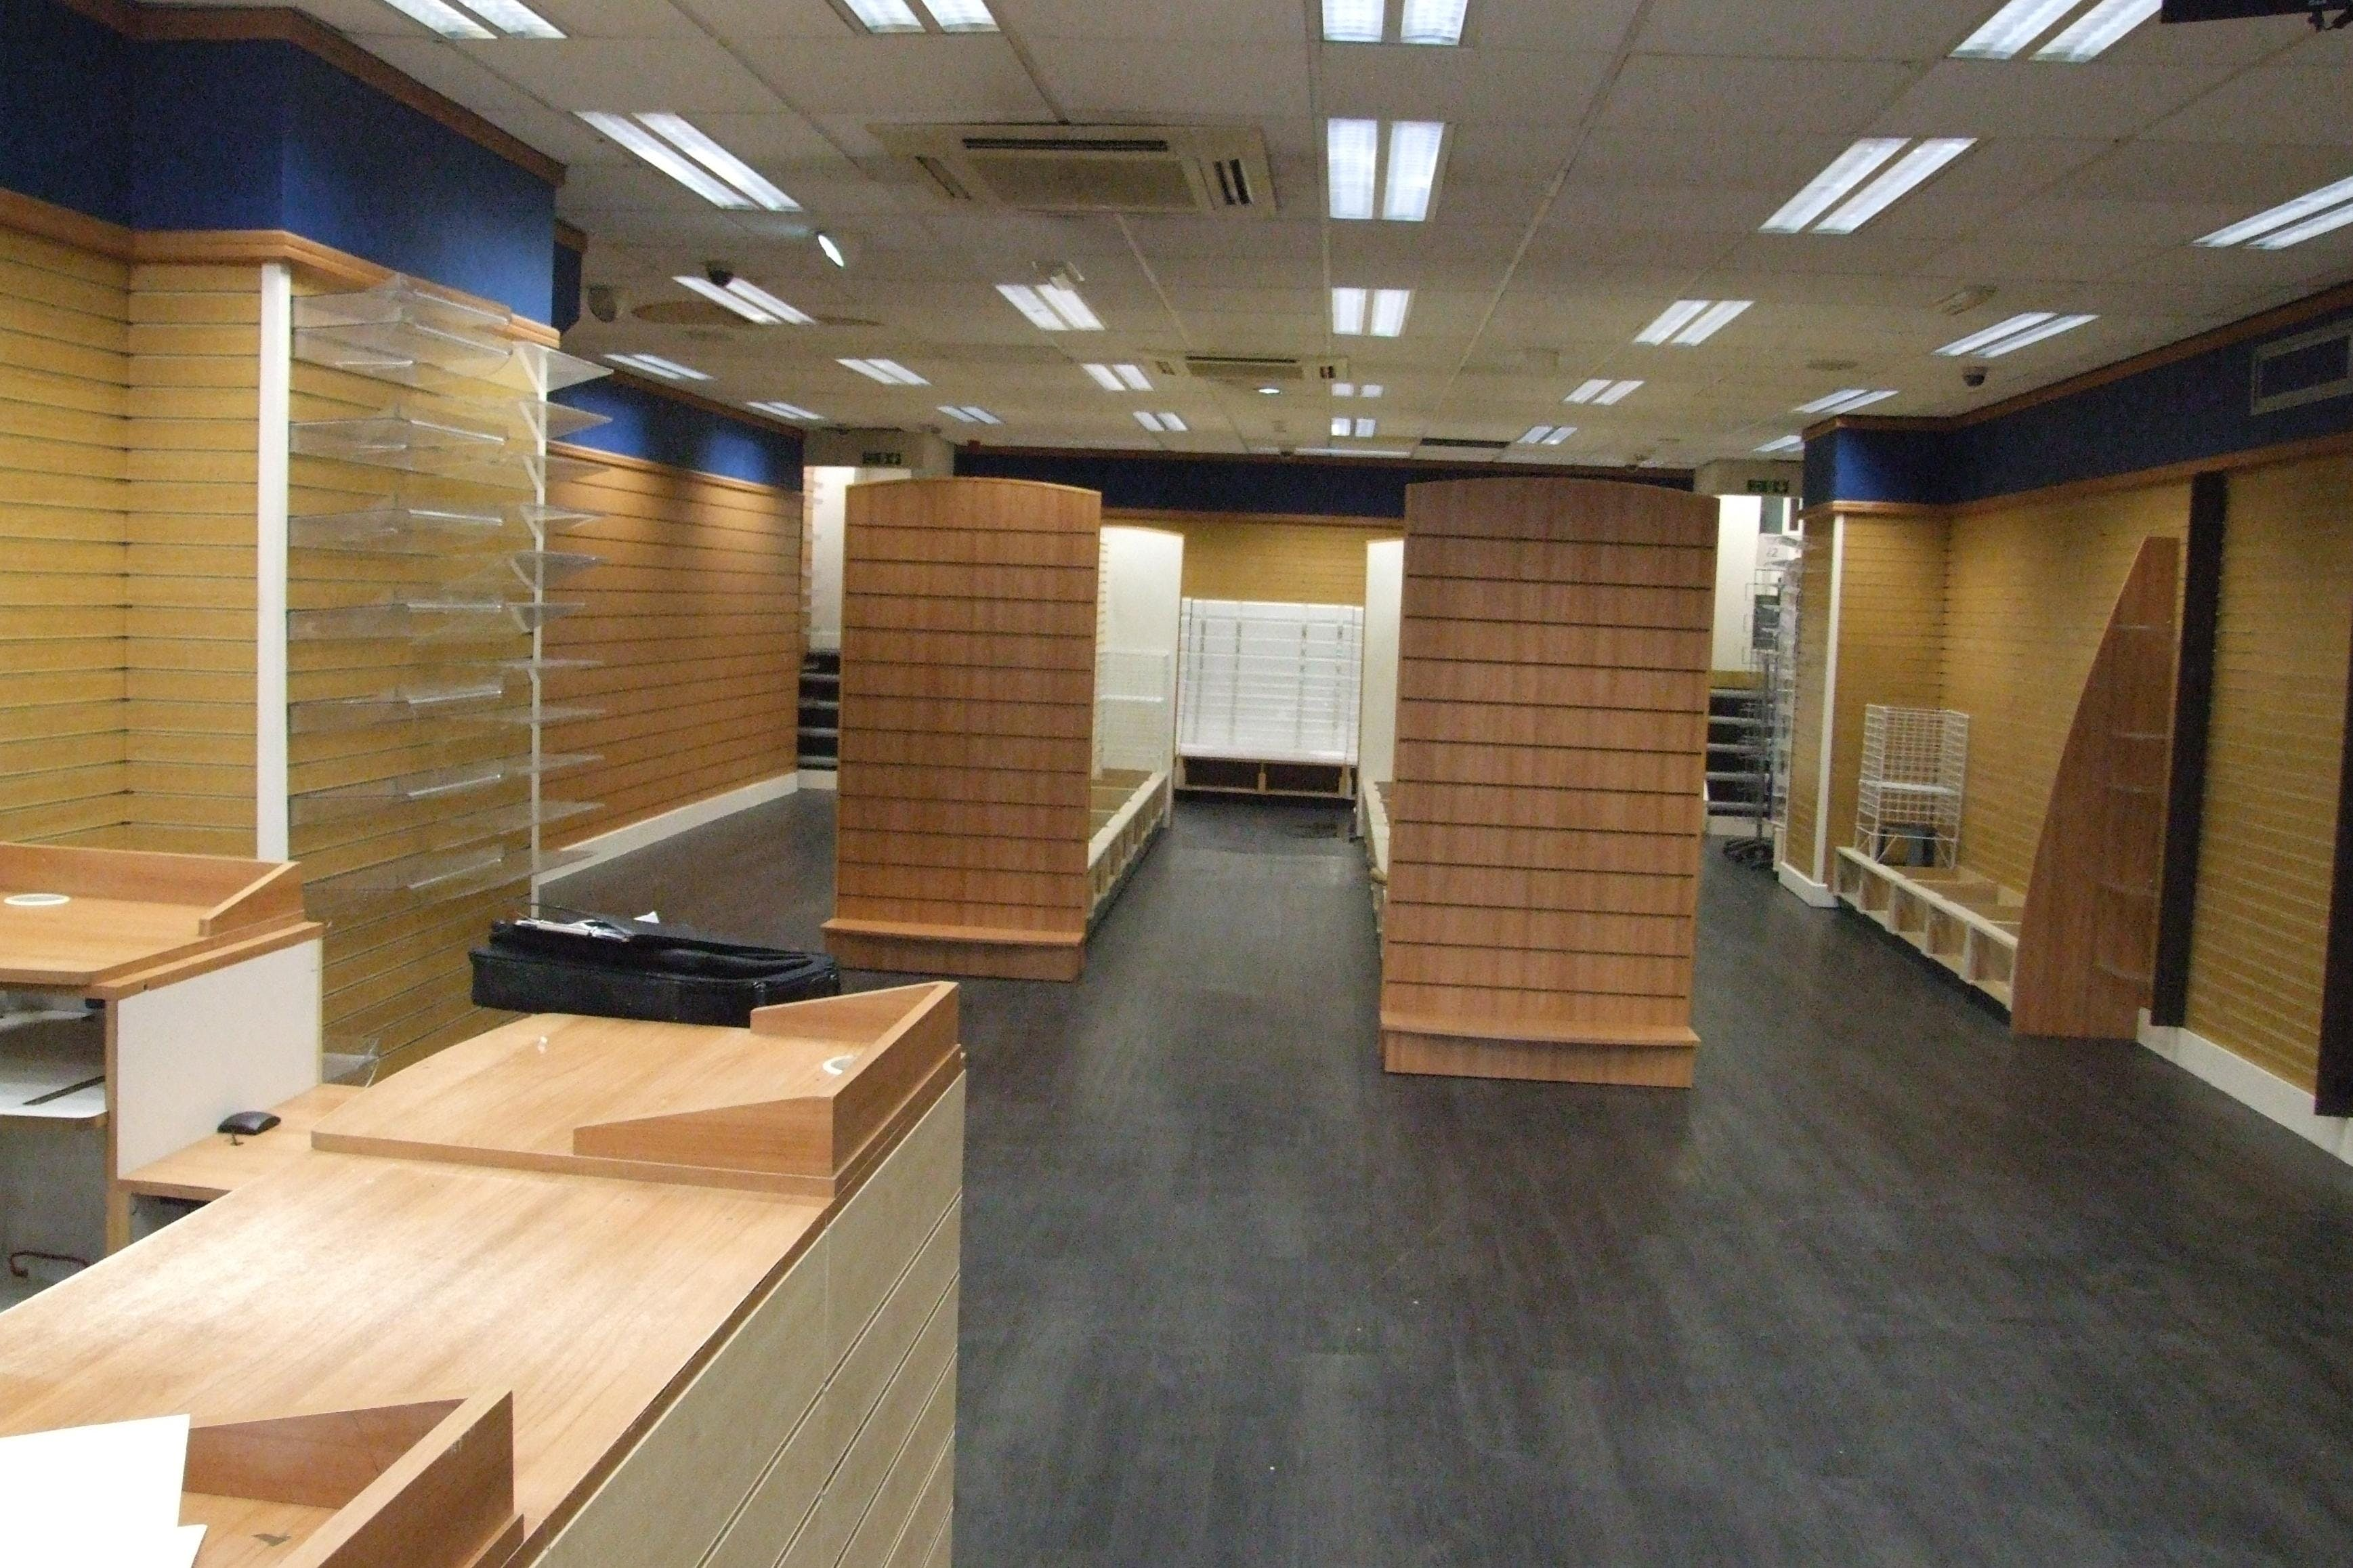 10 High Street, Chesterfield, Retail To Let - 10_High_Street_Chesterfield_sales_area.JPG